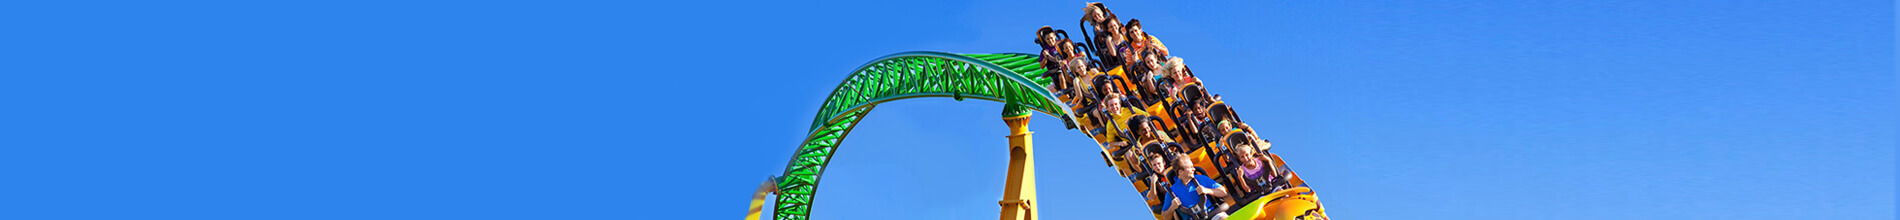 Stay in the Loop with Busch Gardens Tampa Bay